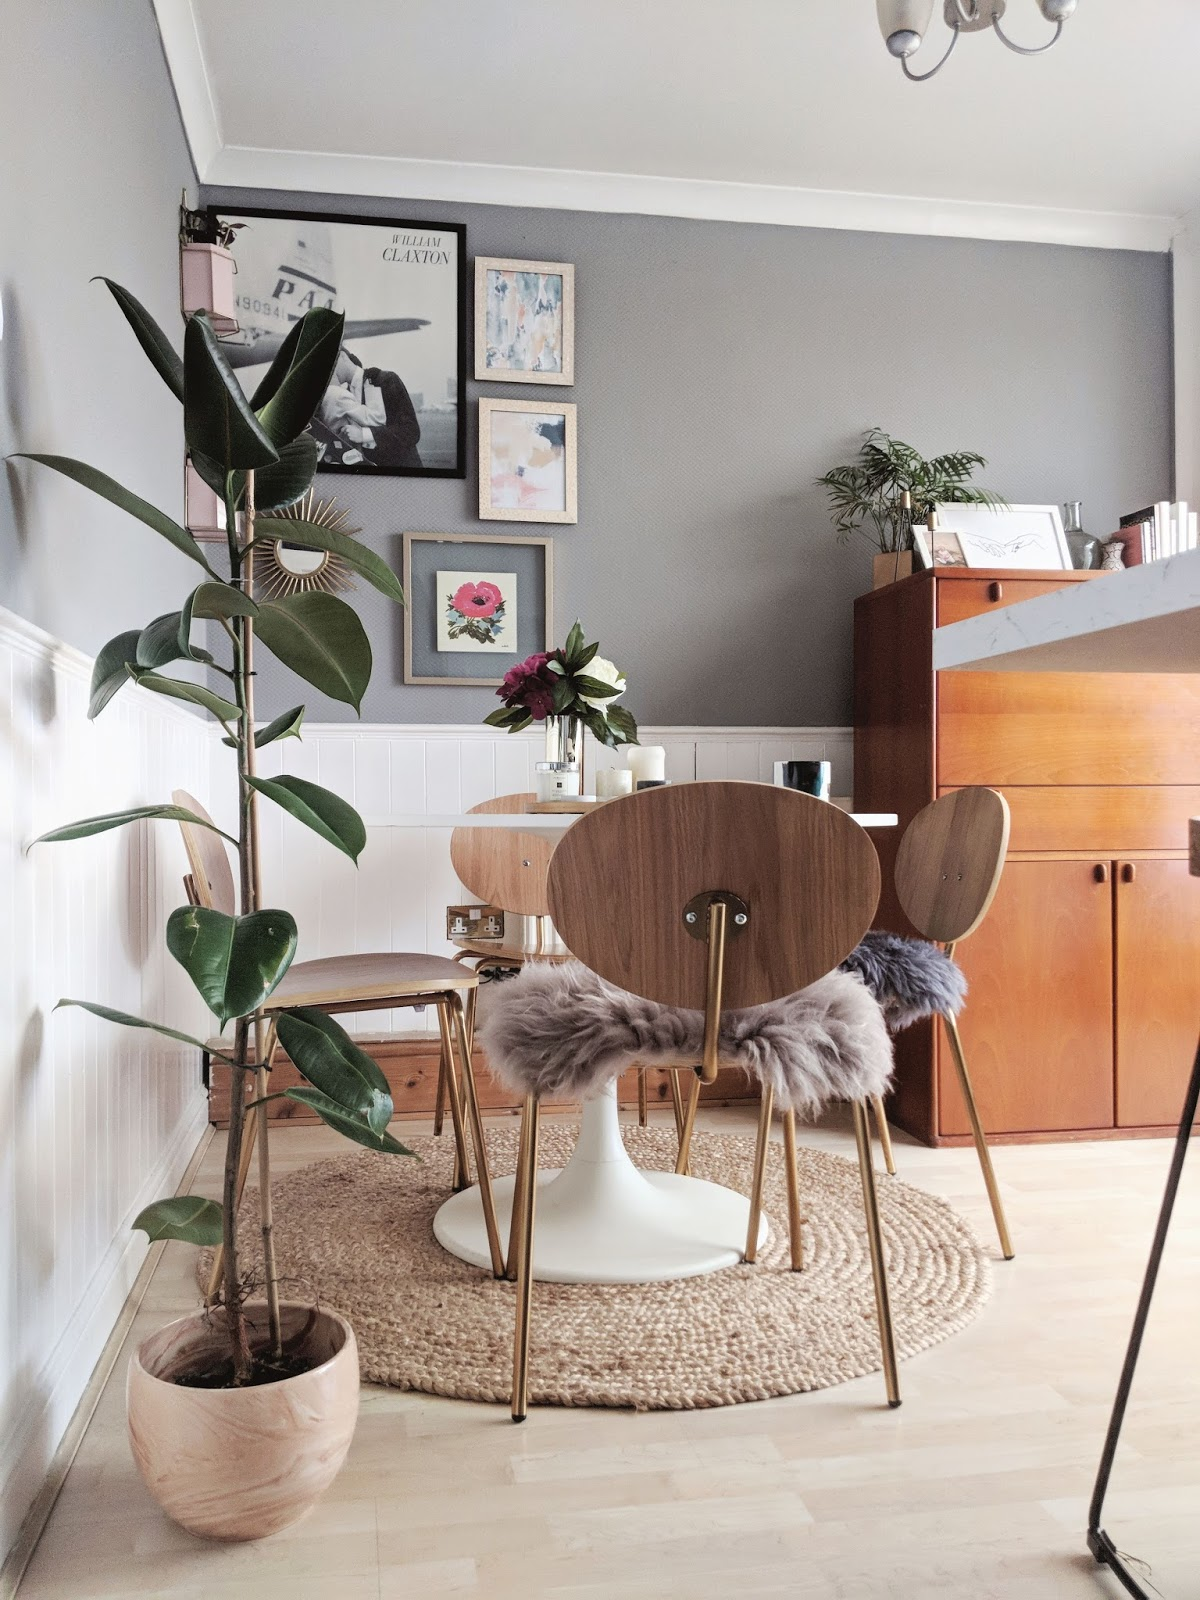 Cult Furniture Roma Chairs